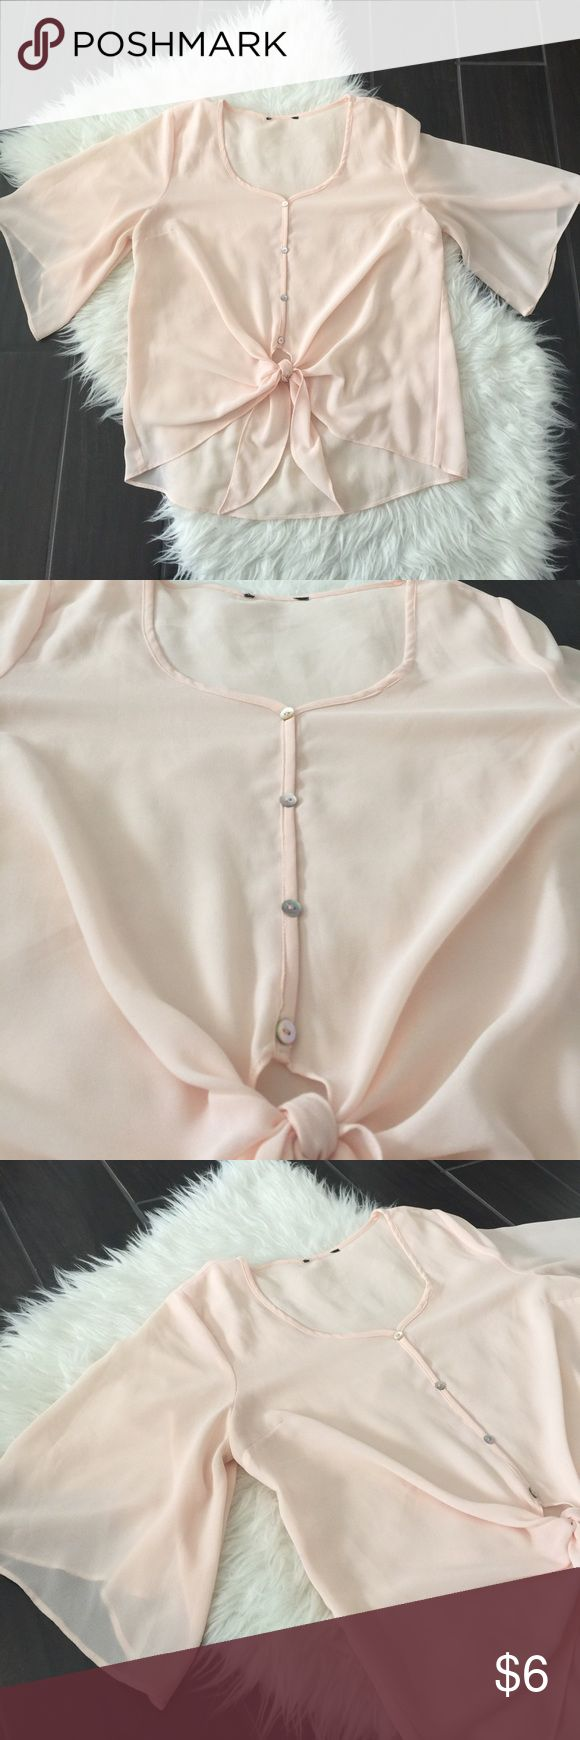 Women's tie front shirt. Pink tie up shirt. Good used condition womens blush pink with a hint of peach tie up shirt. No tags, from TJmaxx. Size medium. No low ball offers or trades. Please ask any questions and review photos for details and wear. TjMaxx Tops Blouses